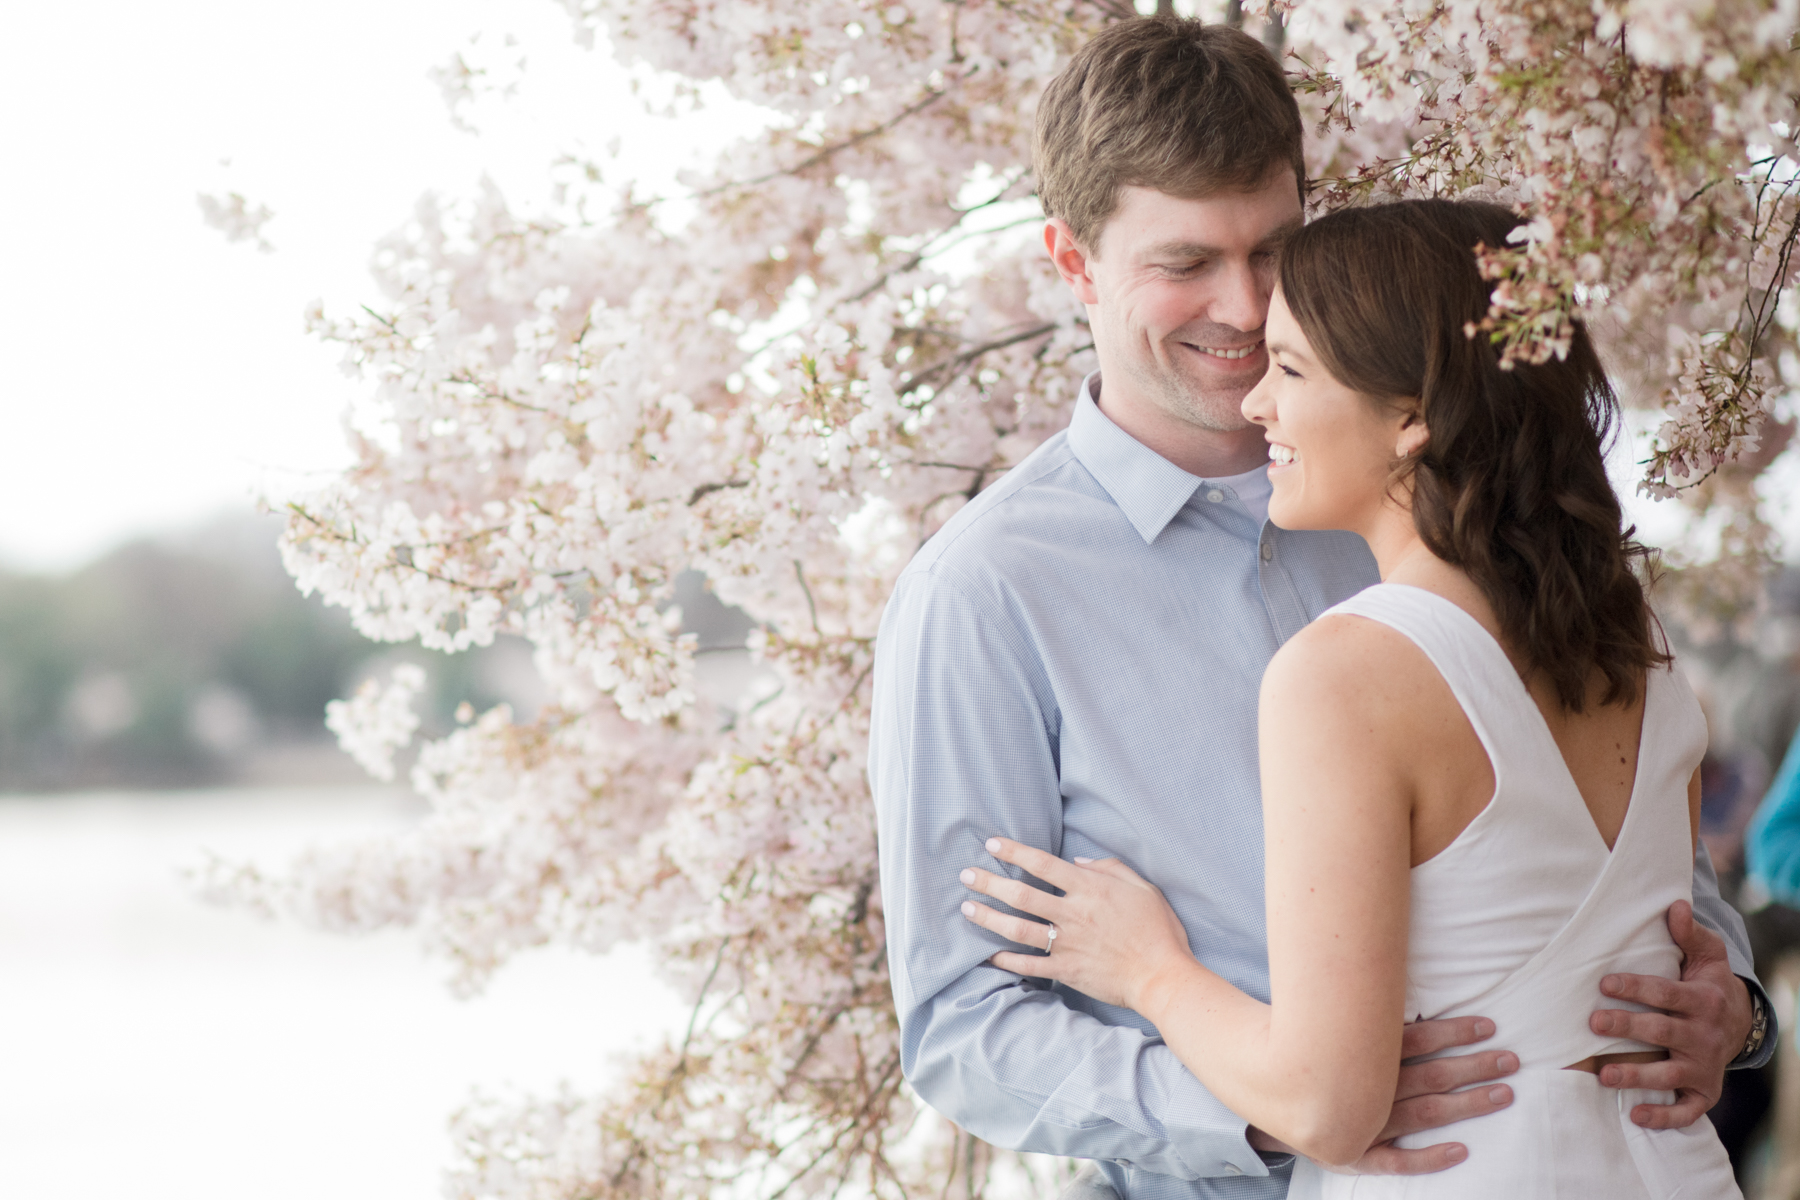 5 x Washington-DC-potomac-maryland-cherry-blossom-tidal-basin-engagement-session-wedding-photographer-5 (1).jpg